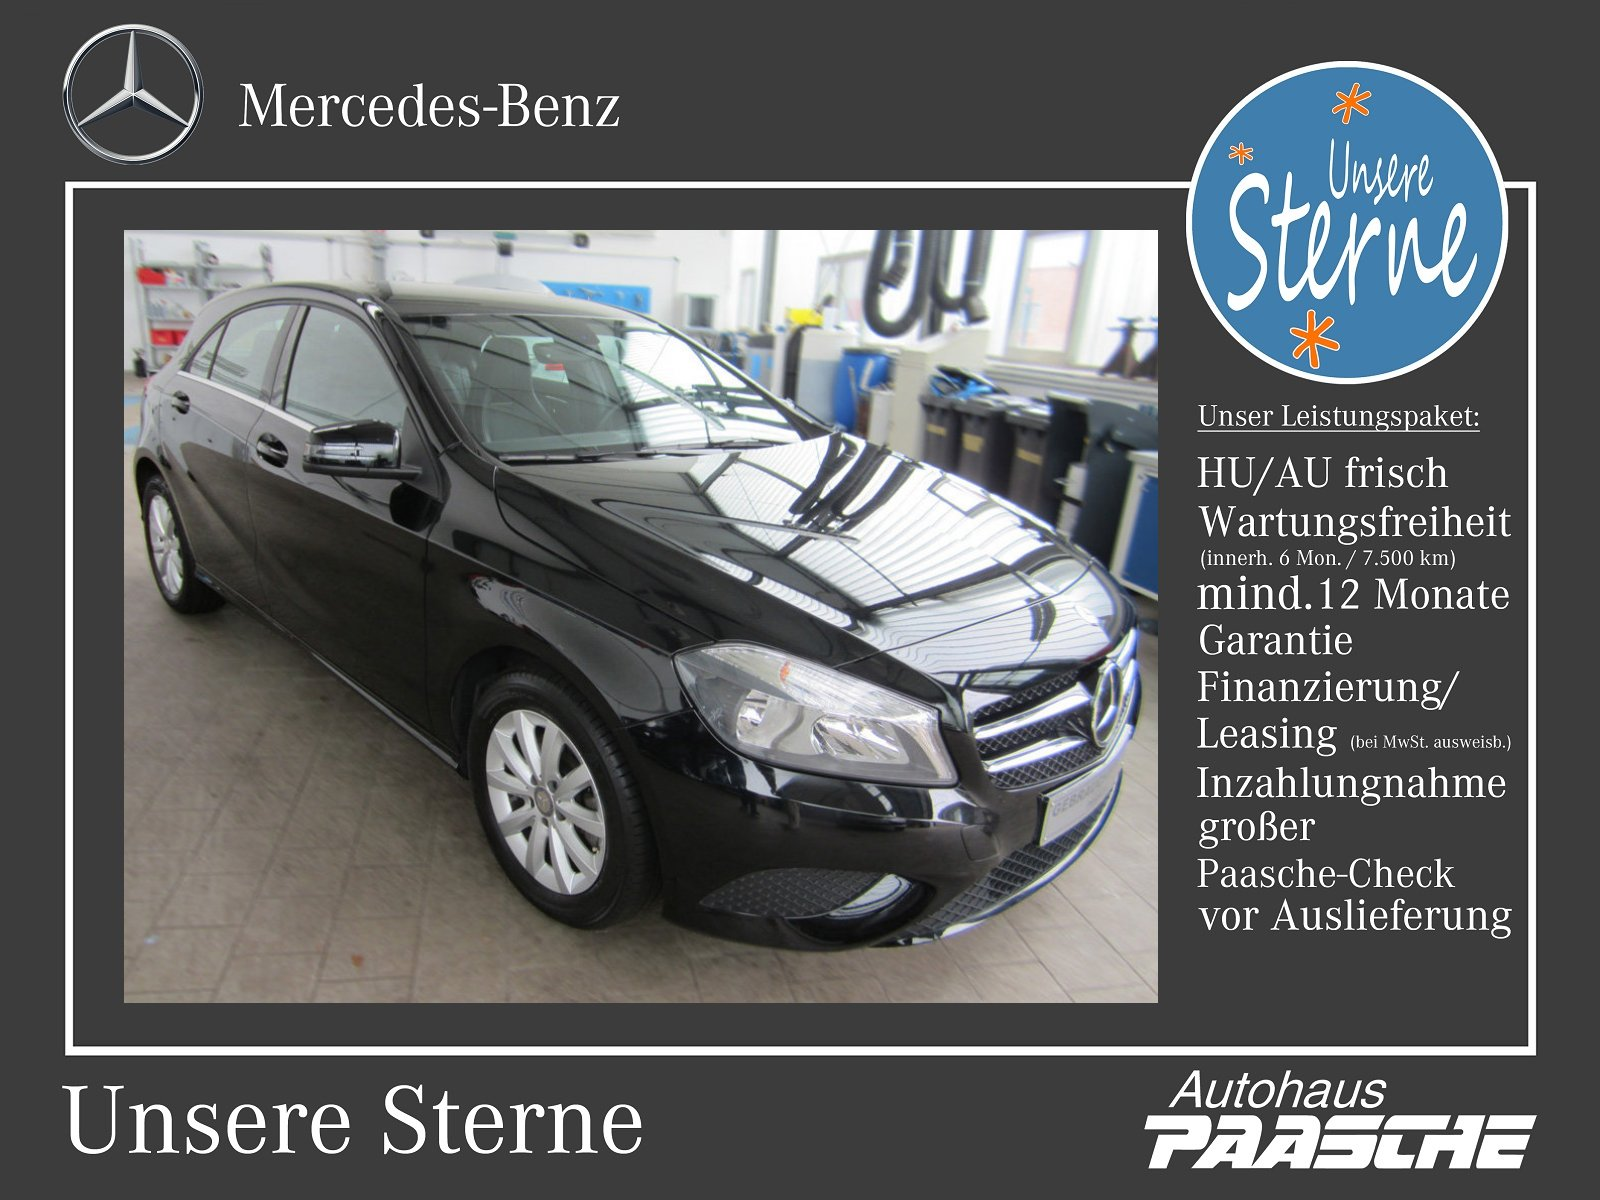 Mercedes-Benz A 200 CDI BlueEFFICIENCY Style/Autom./Klima, Jahr 2012, Diesel